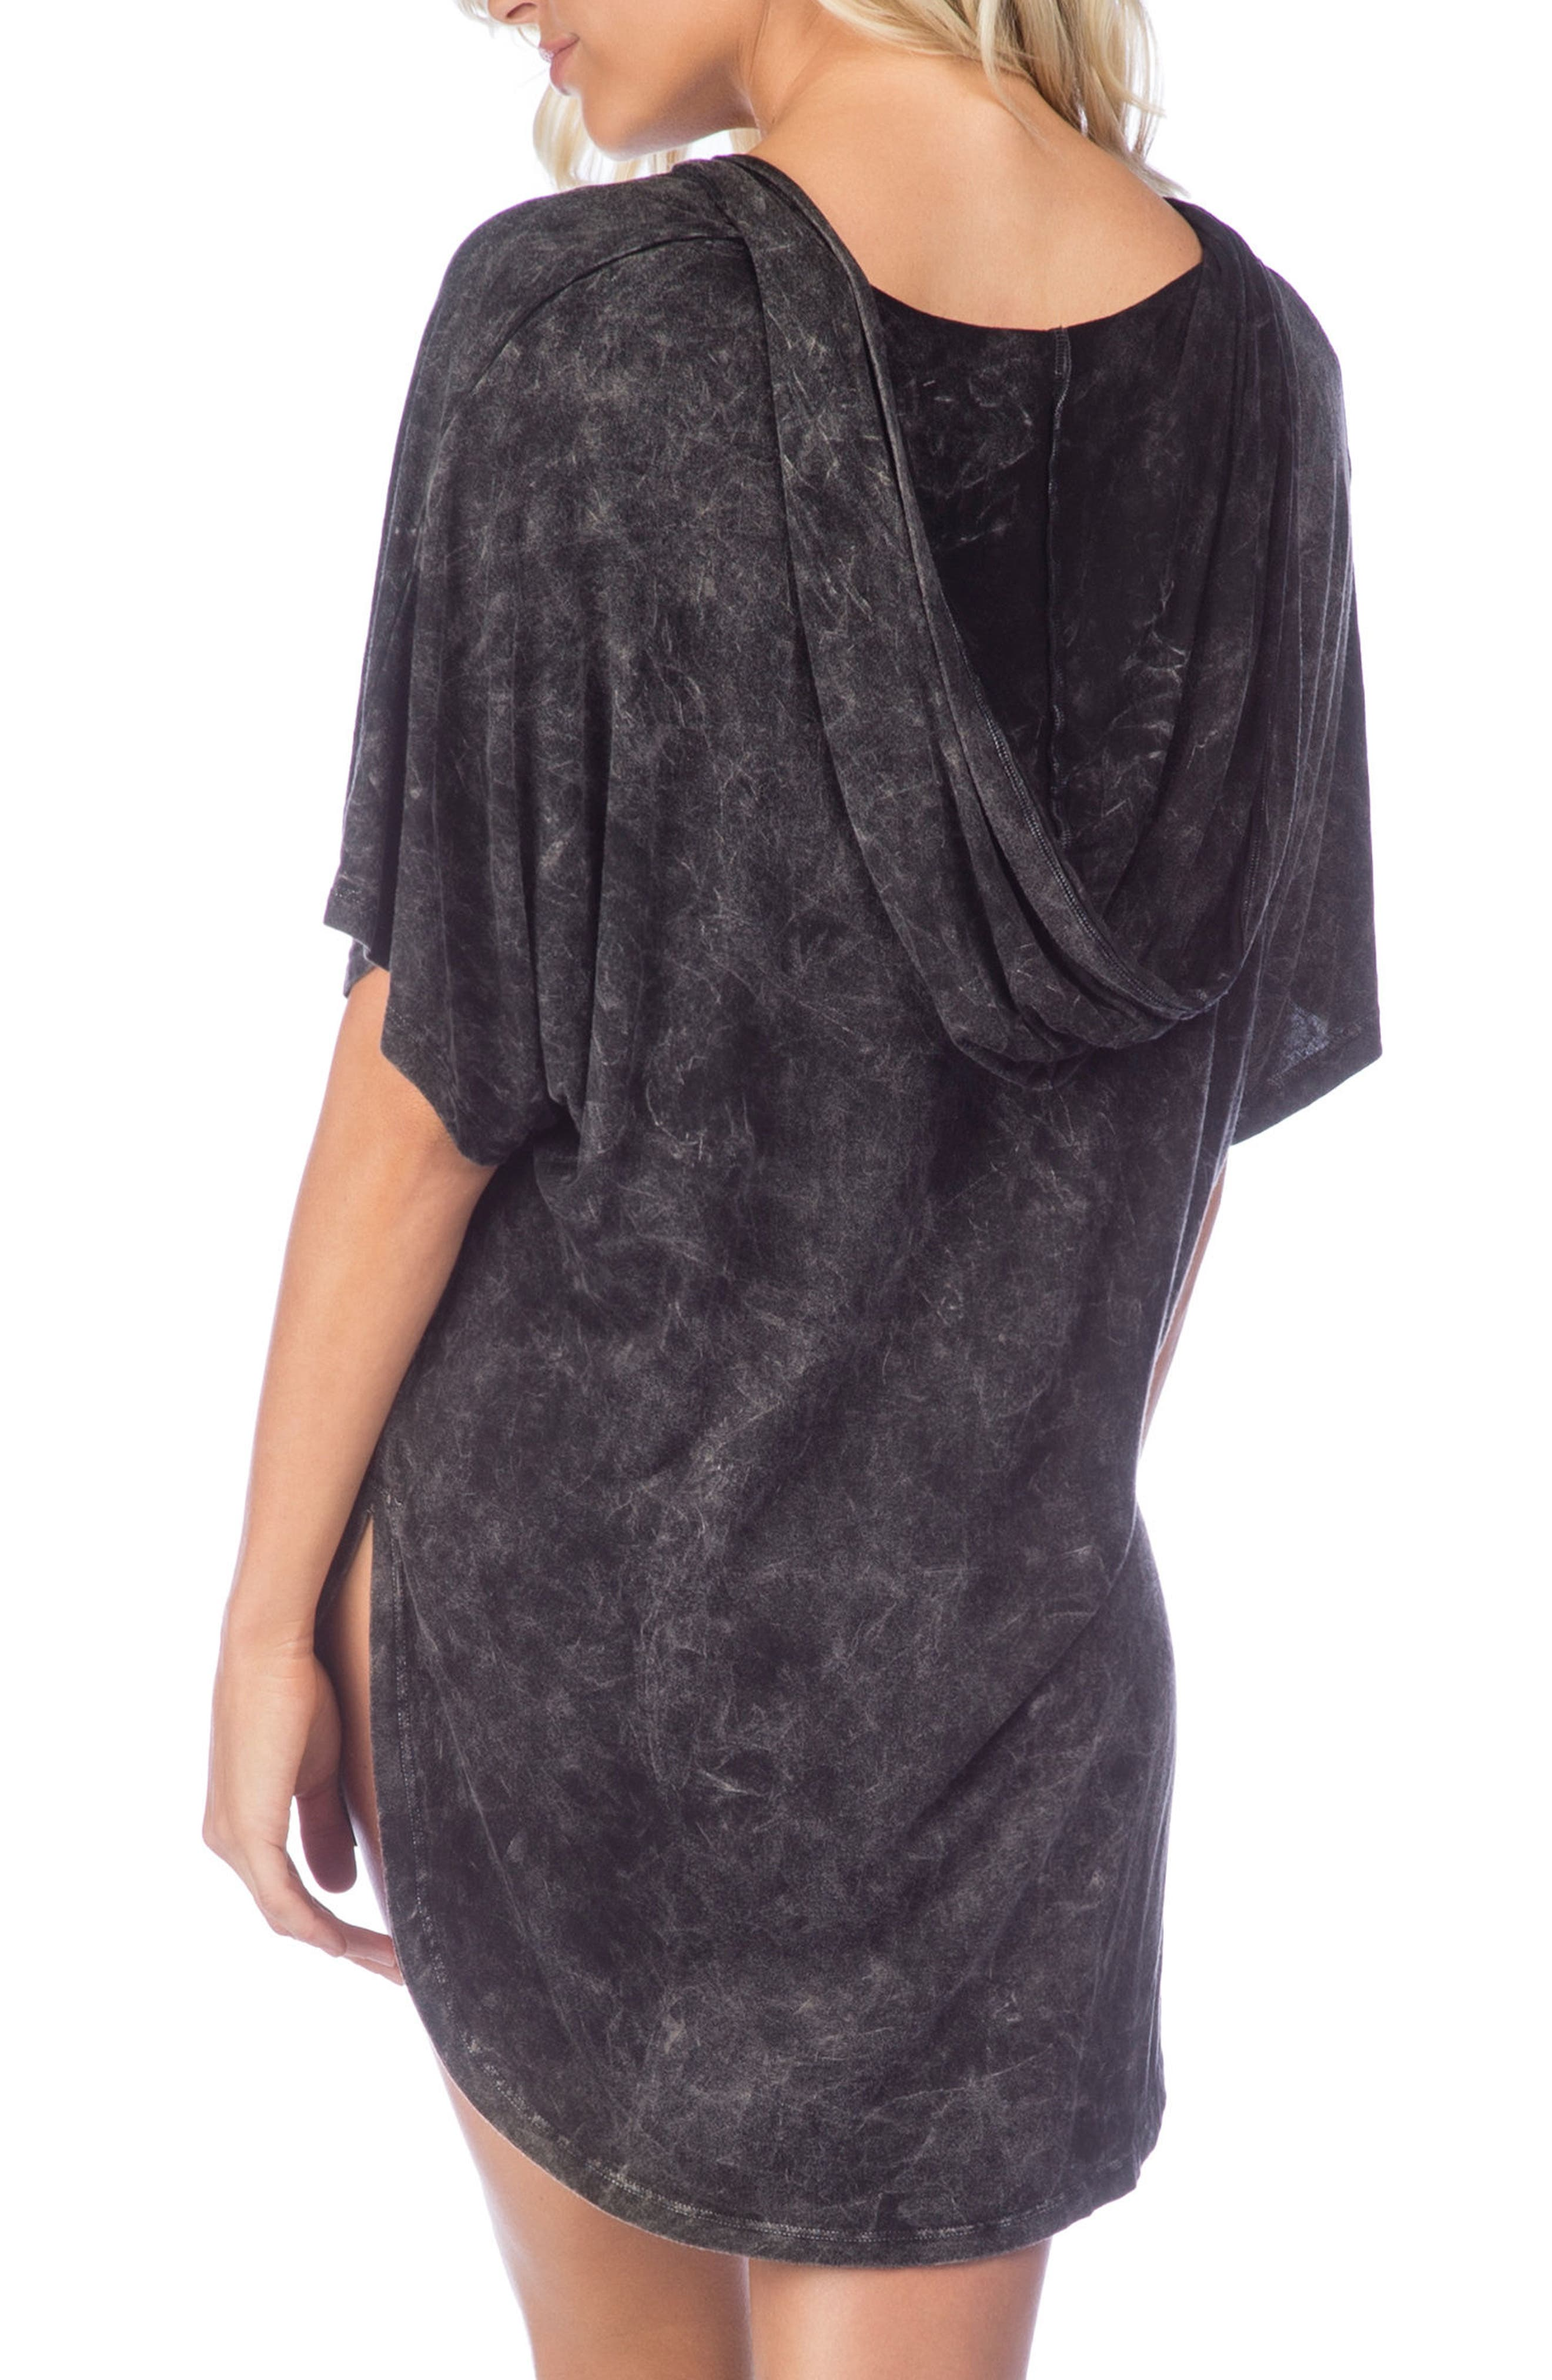 Riviera Hooded Cover-Up,                             Alternate thumbnail 2, color,                             001